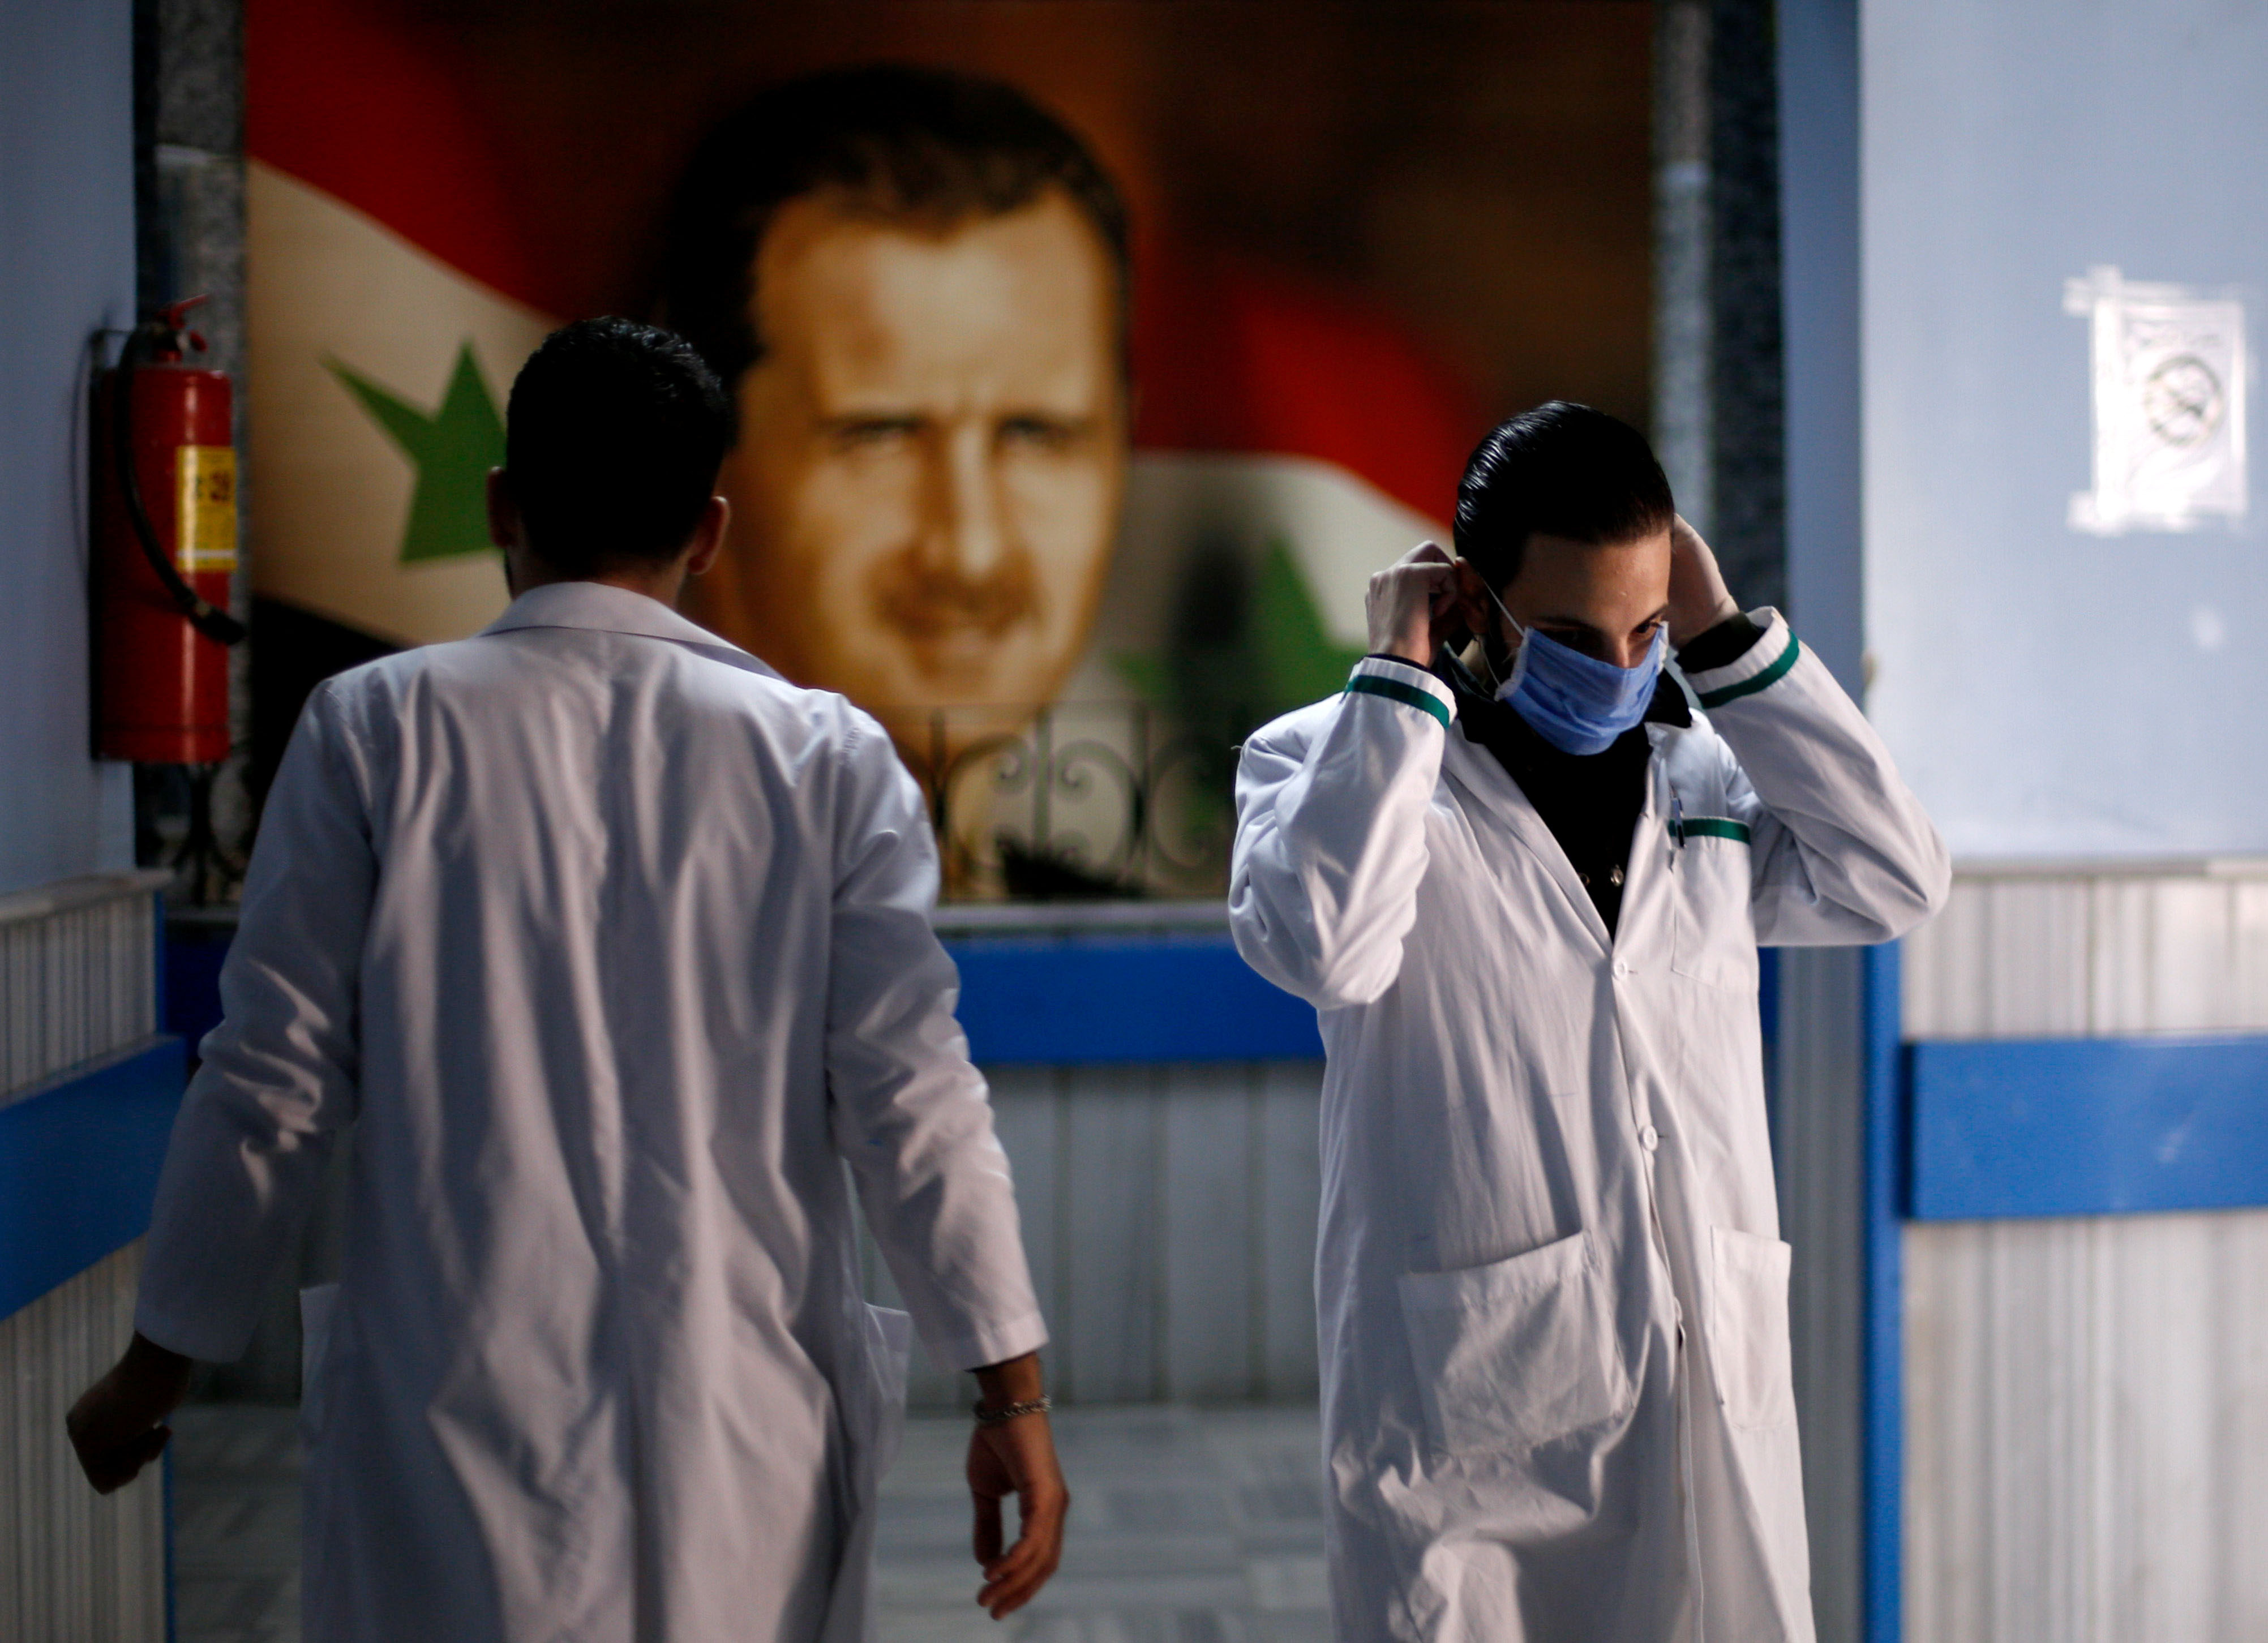 Corona injuries are rising frighteningly, and the health of the regime is sounding the alarm